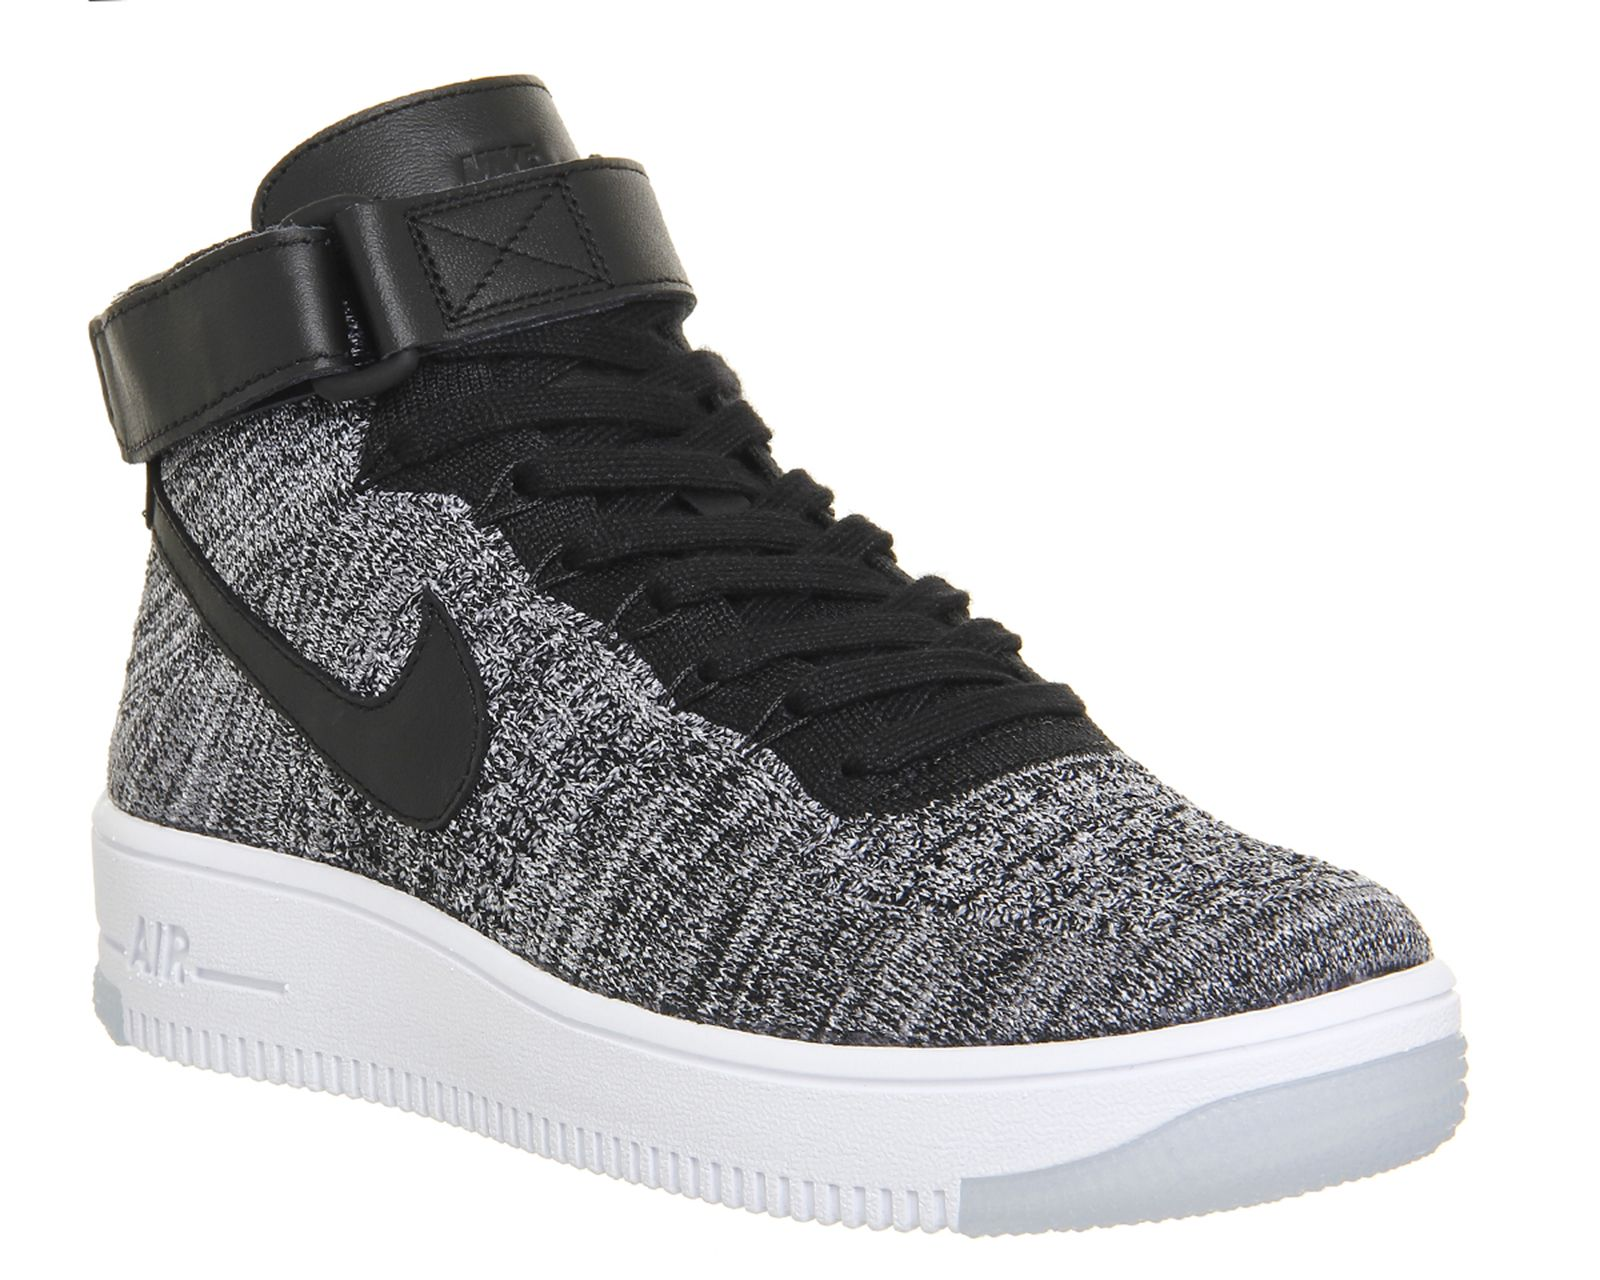 Buy Black White W Nike Air Force 1 Mid Flyknit from OFFICE.co.uk